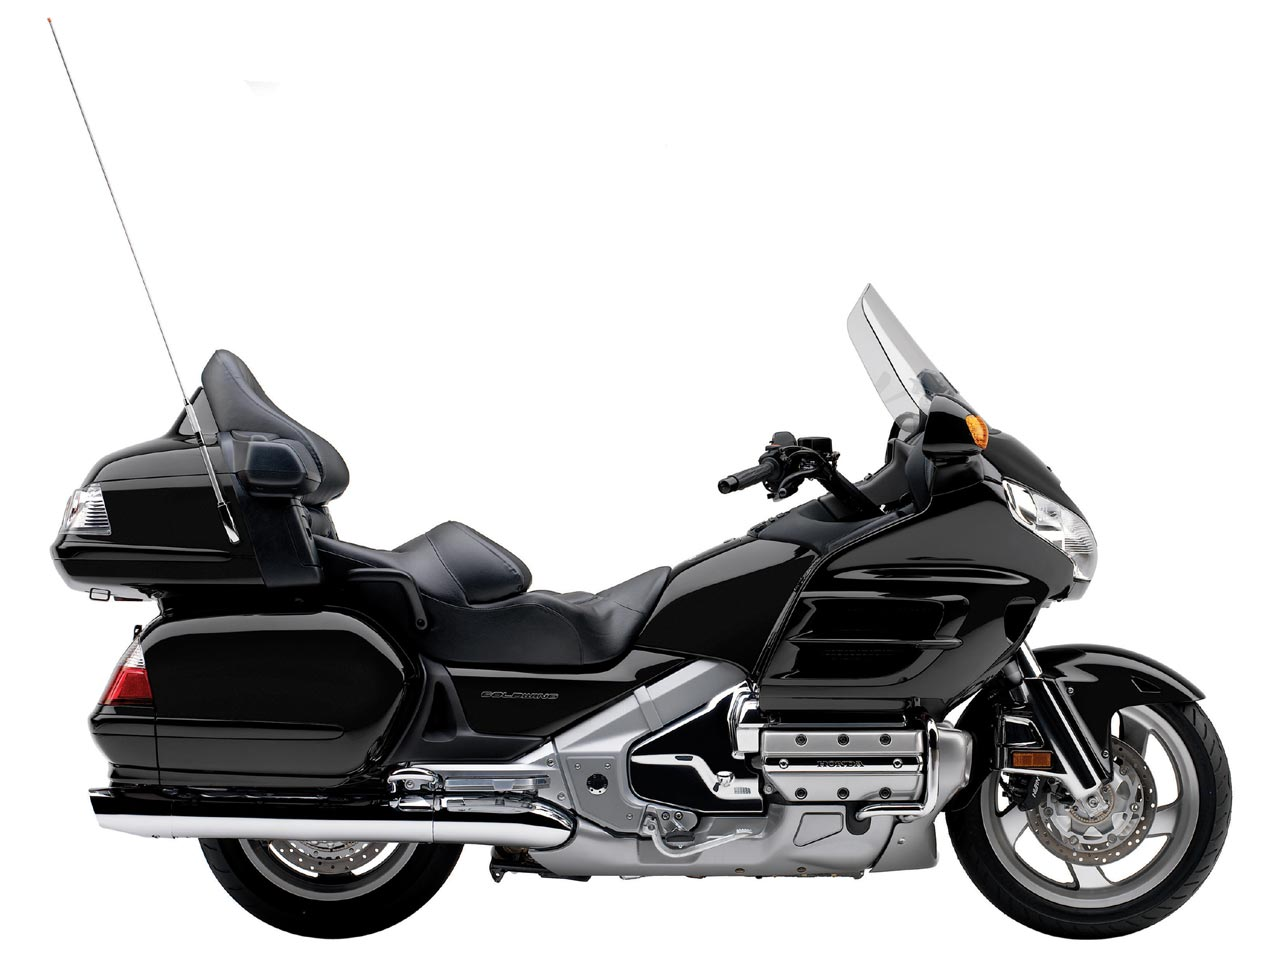 total motorcycle website 2006 honda gold wing rh totalmotorcycle com 2006 honda gl1800 service manual 2006 Honda Goldwing Review